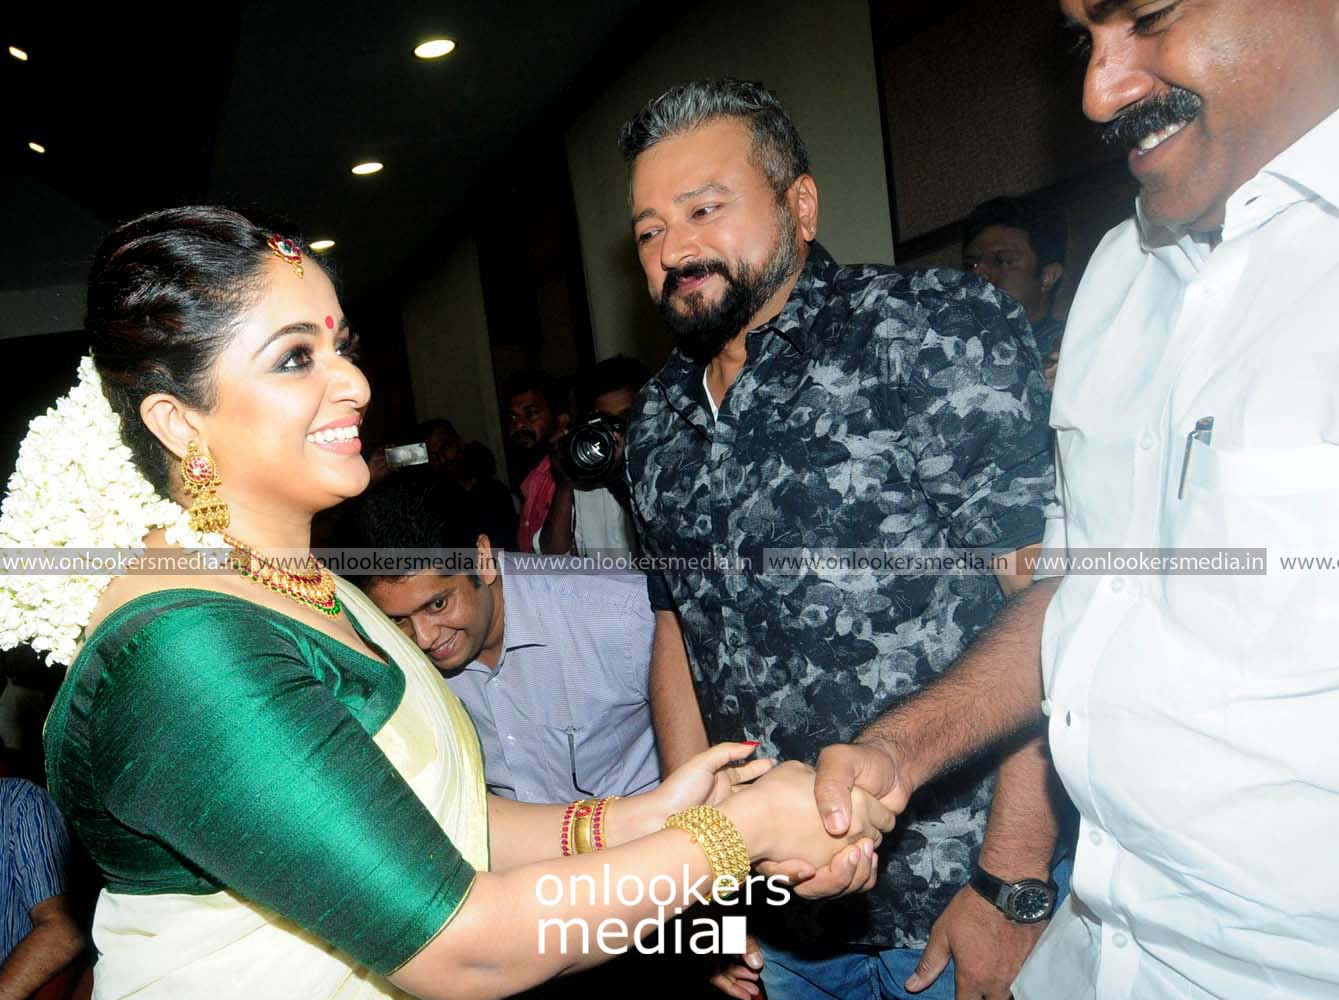 http://onlookersmedia.in/wp-content/uploads/2016/11/Dileep-Kavya-Madhavan-Wedding-Stills-Photos-8.jpg